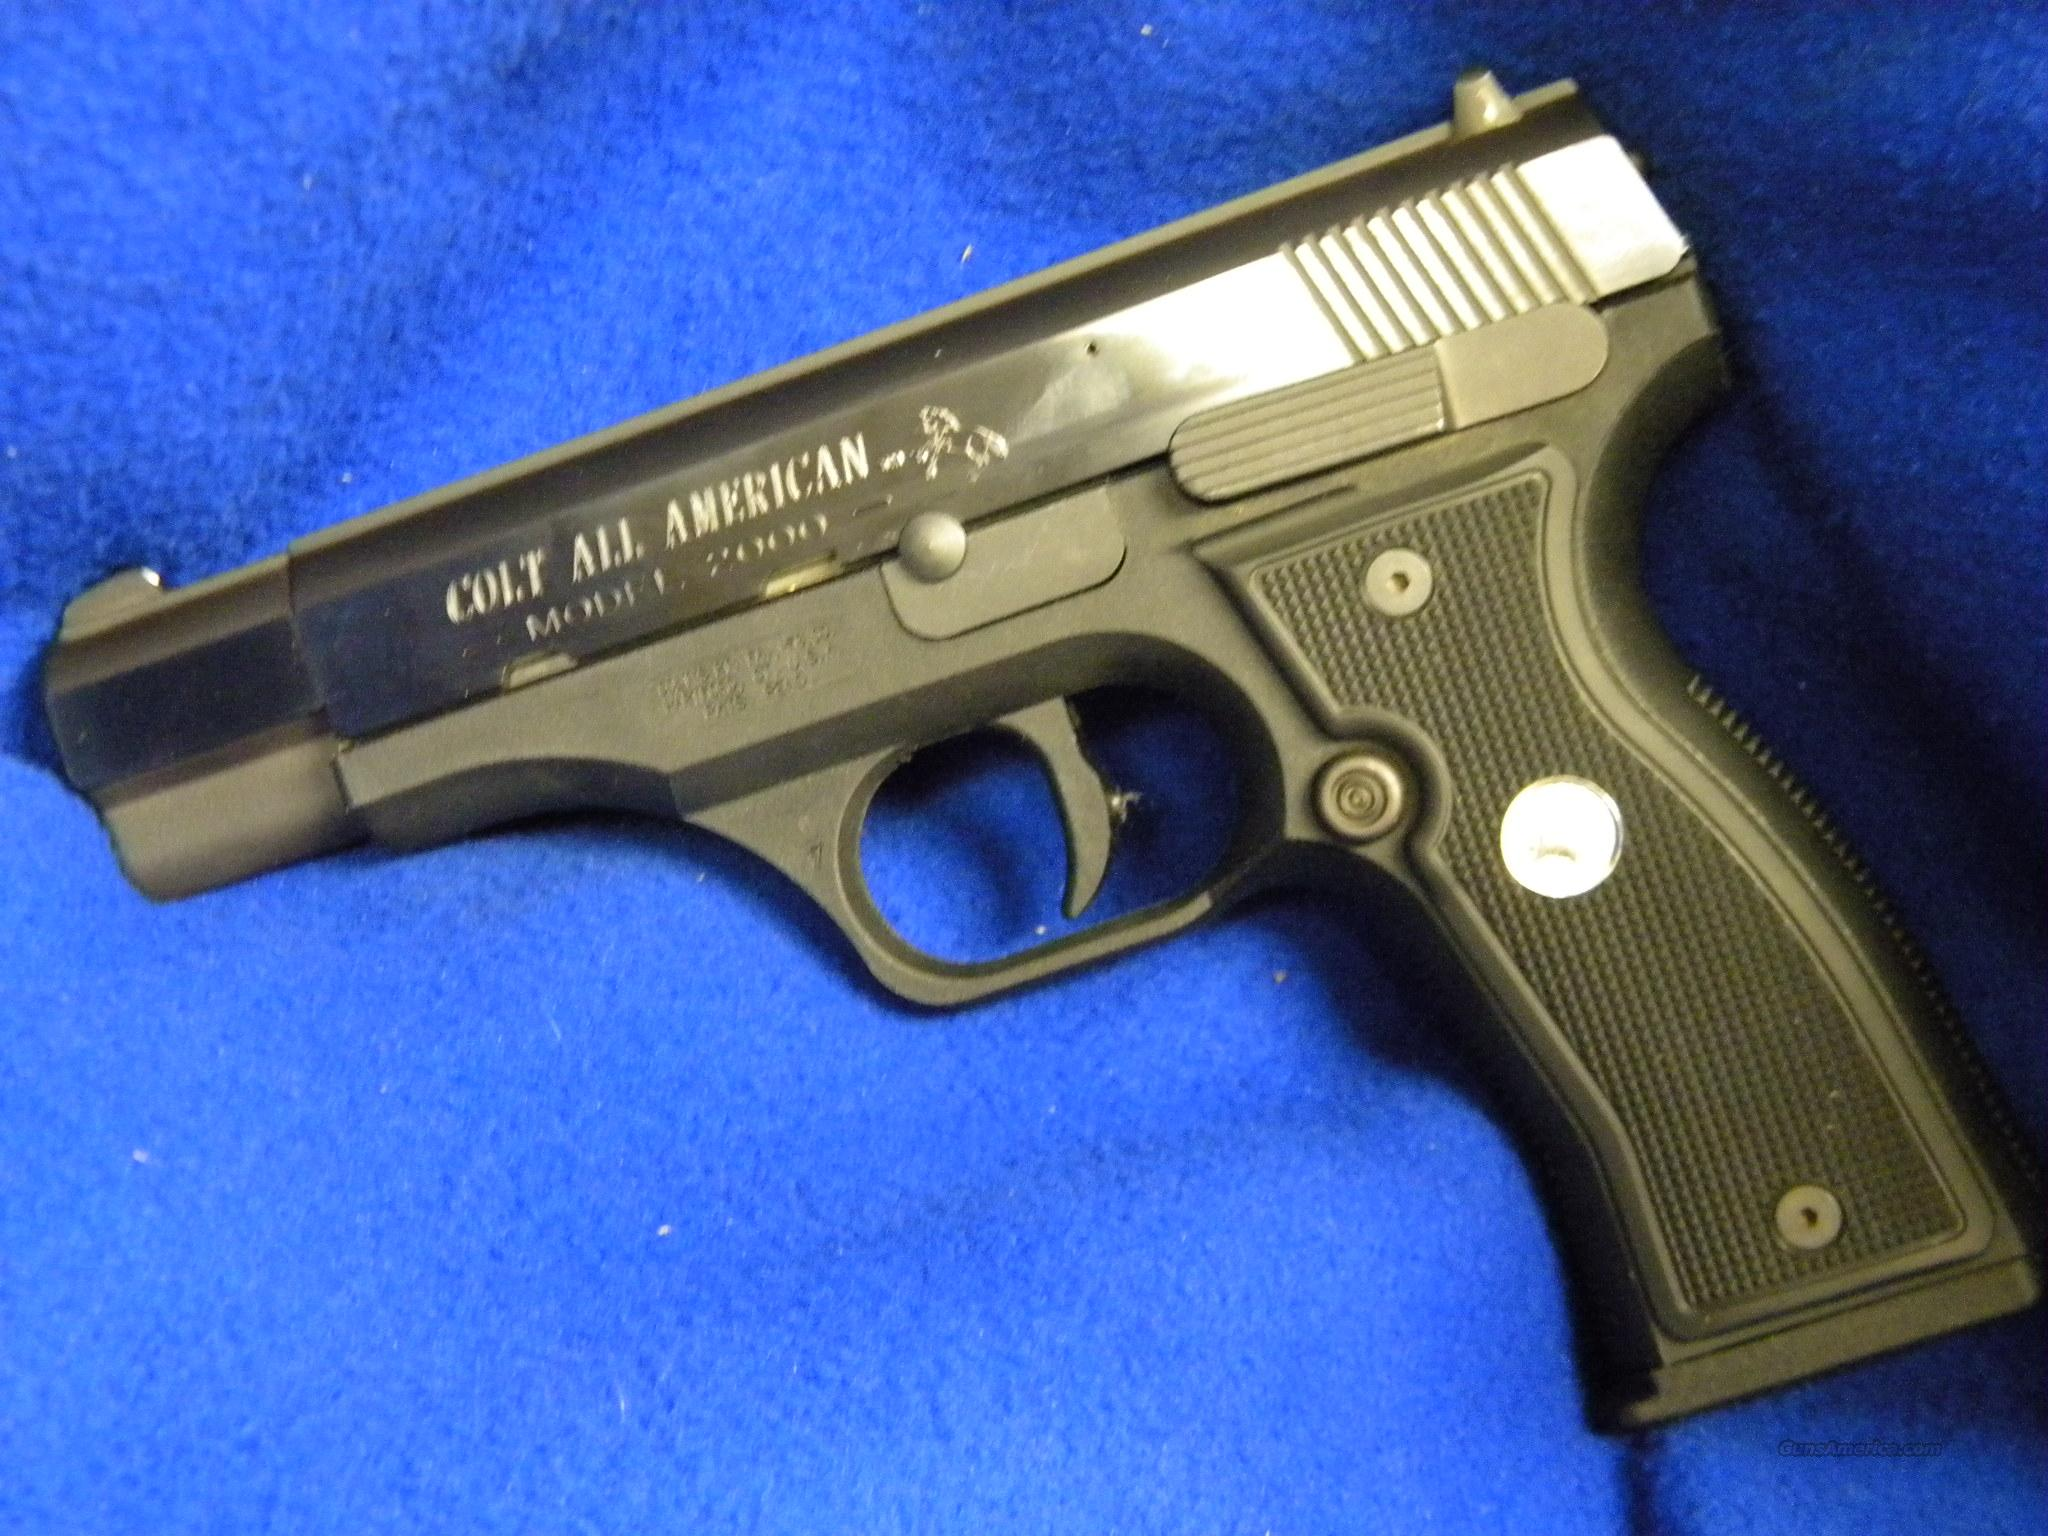 Used, Like new, Colt All American AM2000 9mm   Guns > Pistols > Colt Automatic Pistols (1911 & Var)